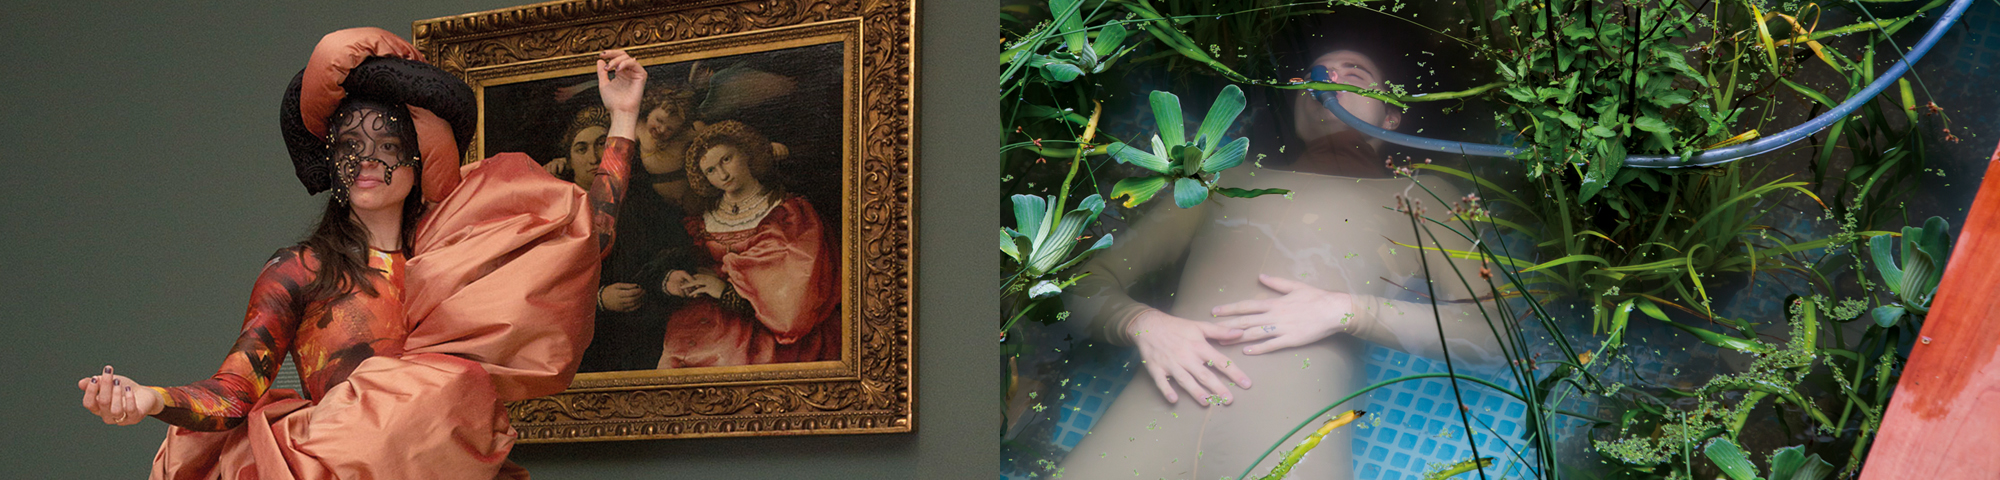 Model in costume posing in front of museum portrait (left) display featuring a person submerged under water (right)